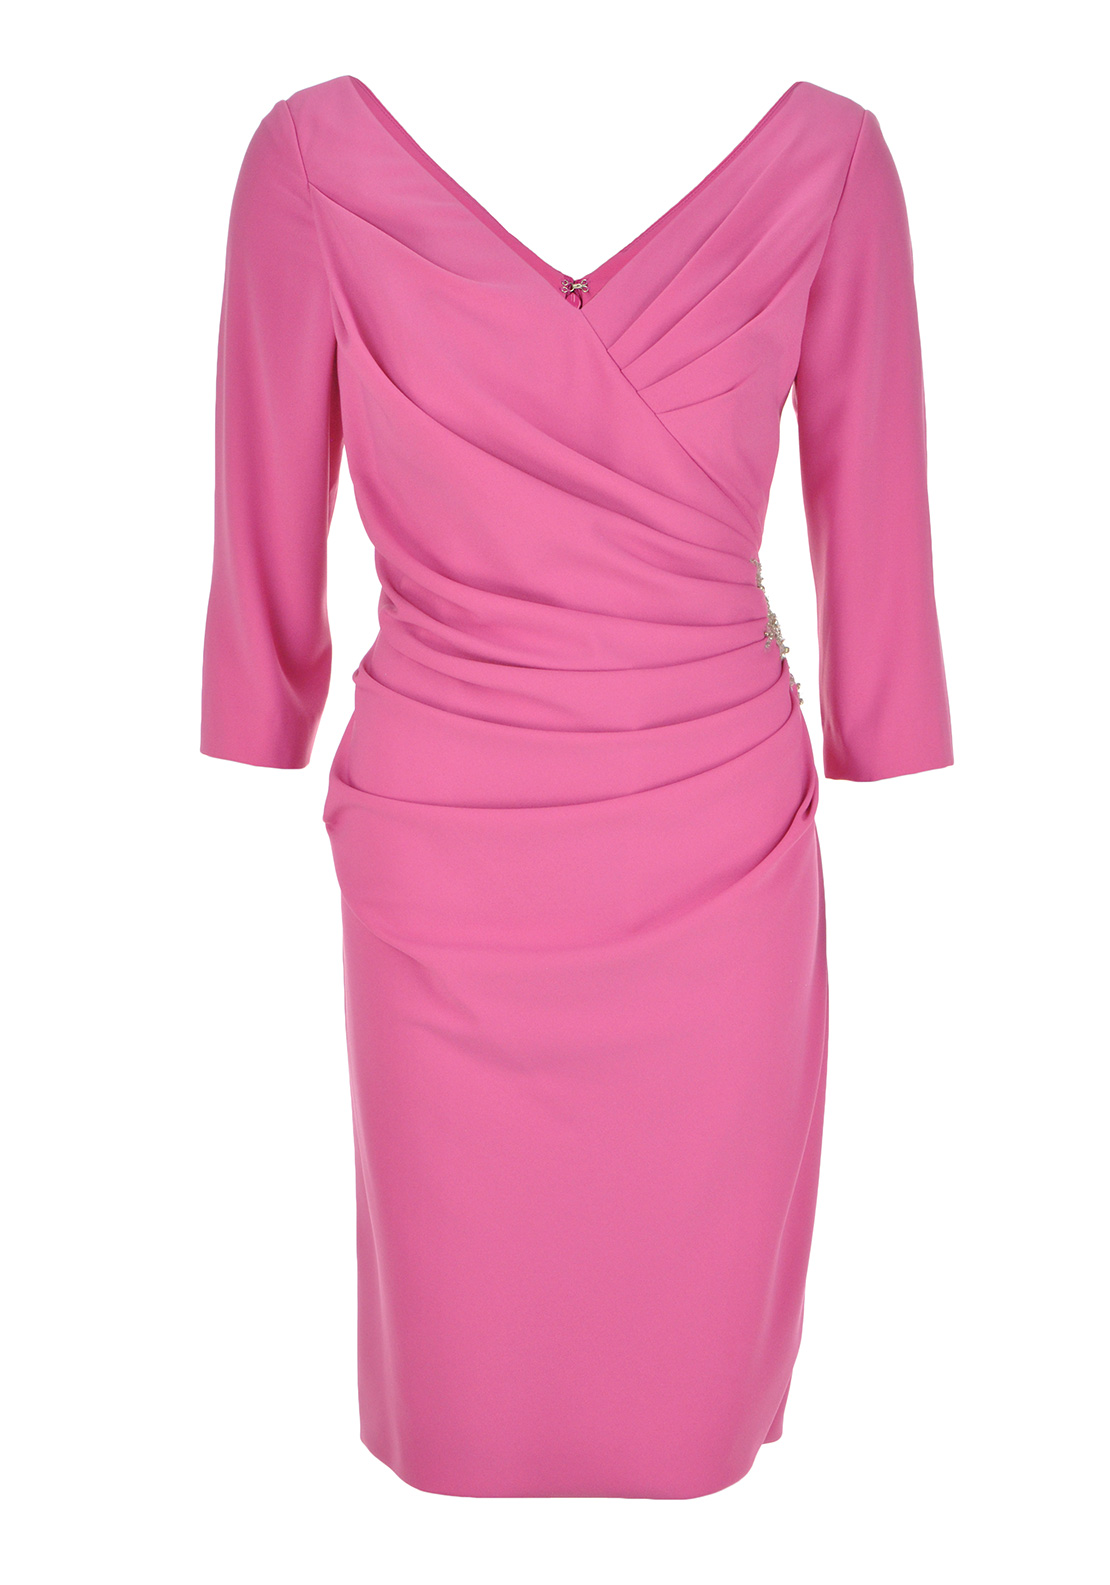 Irresistible Three Quarter Sleeve Occasion Dress, Pink